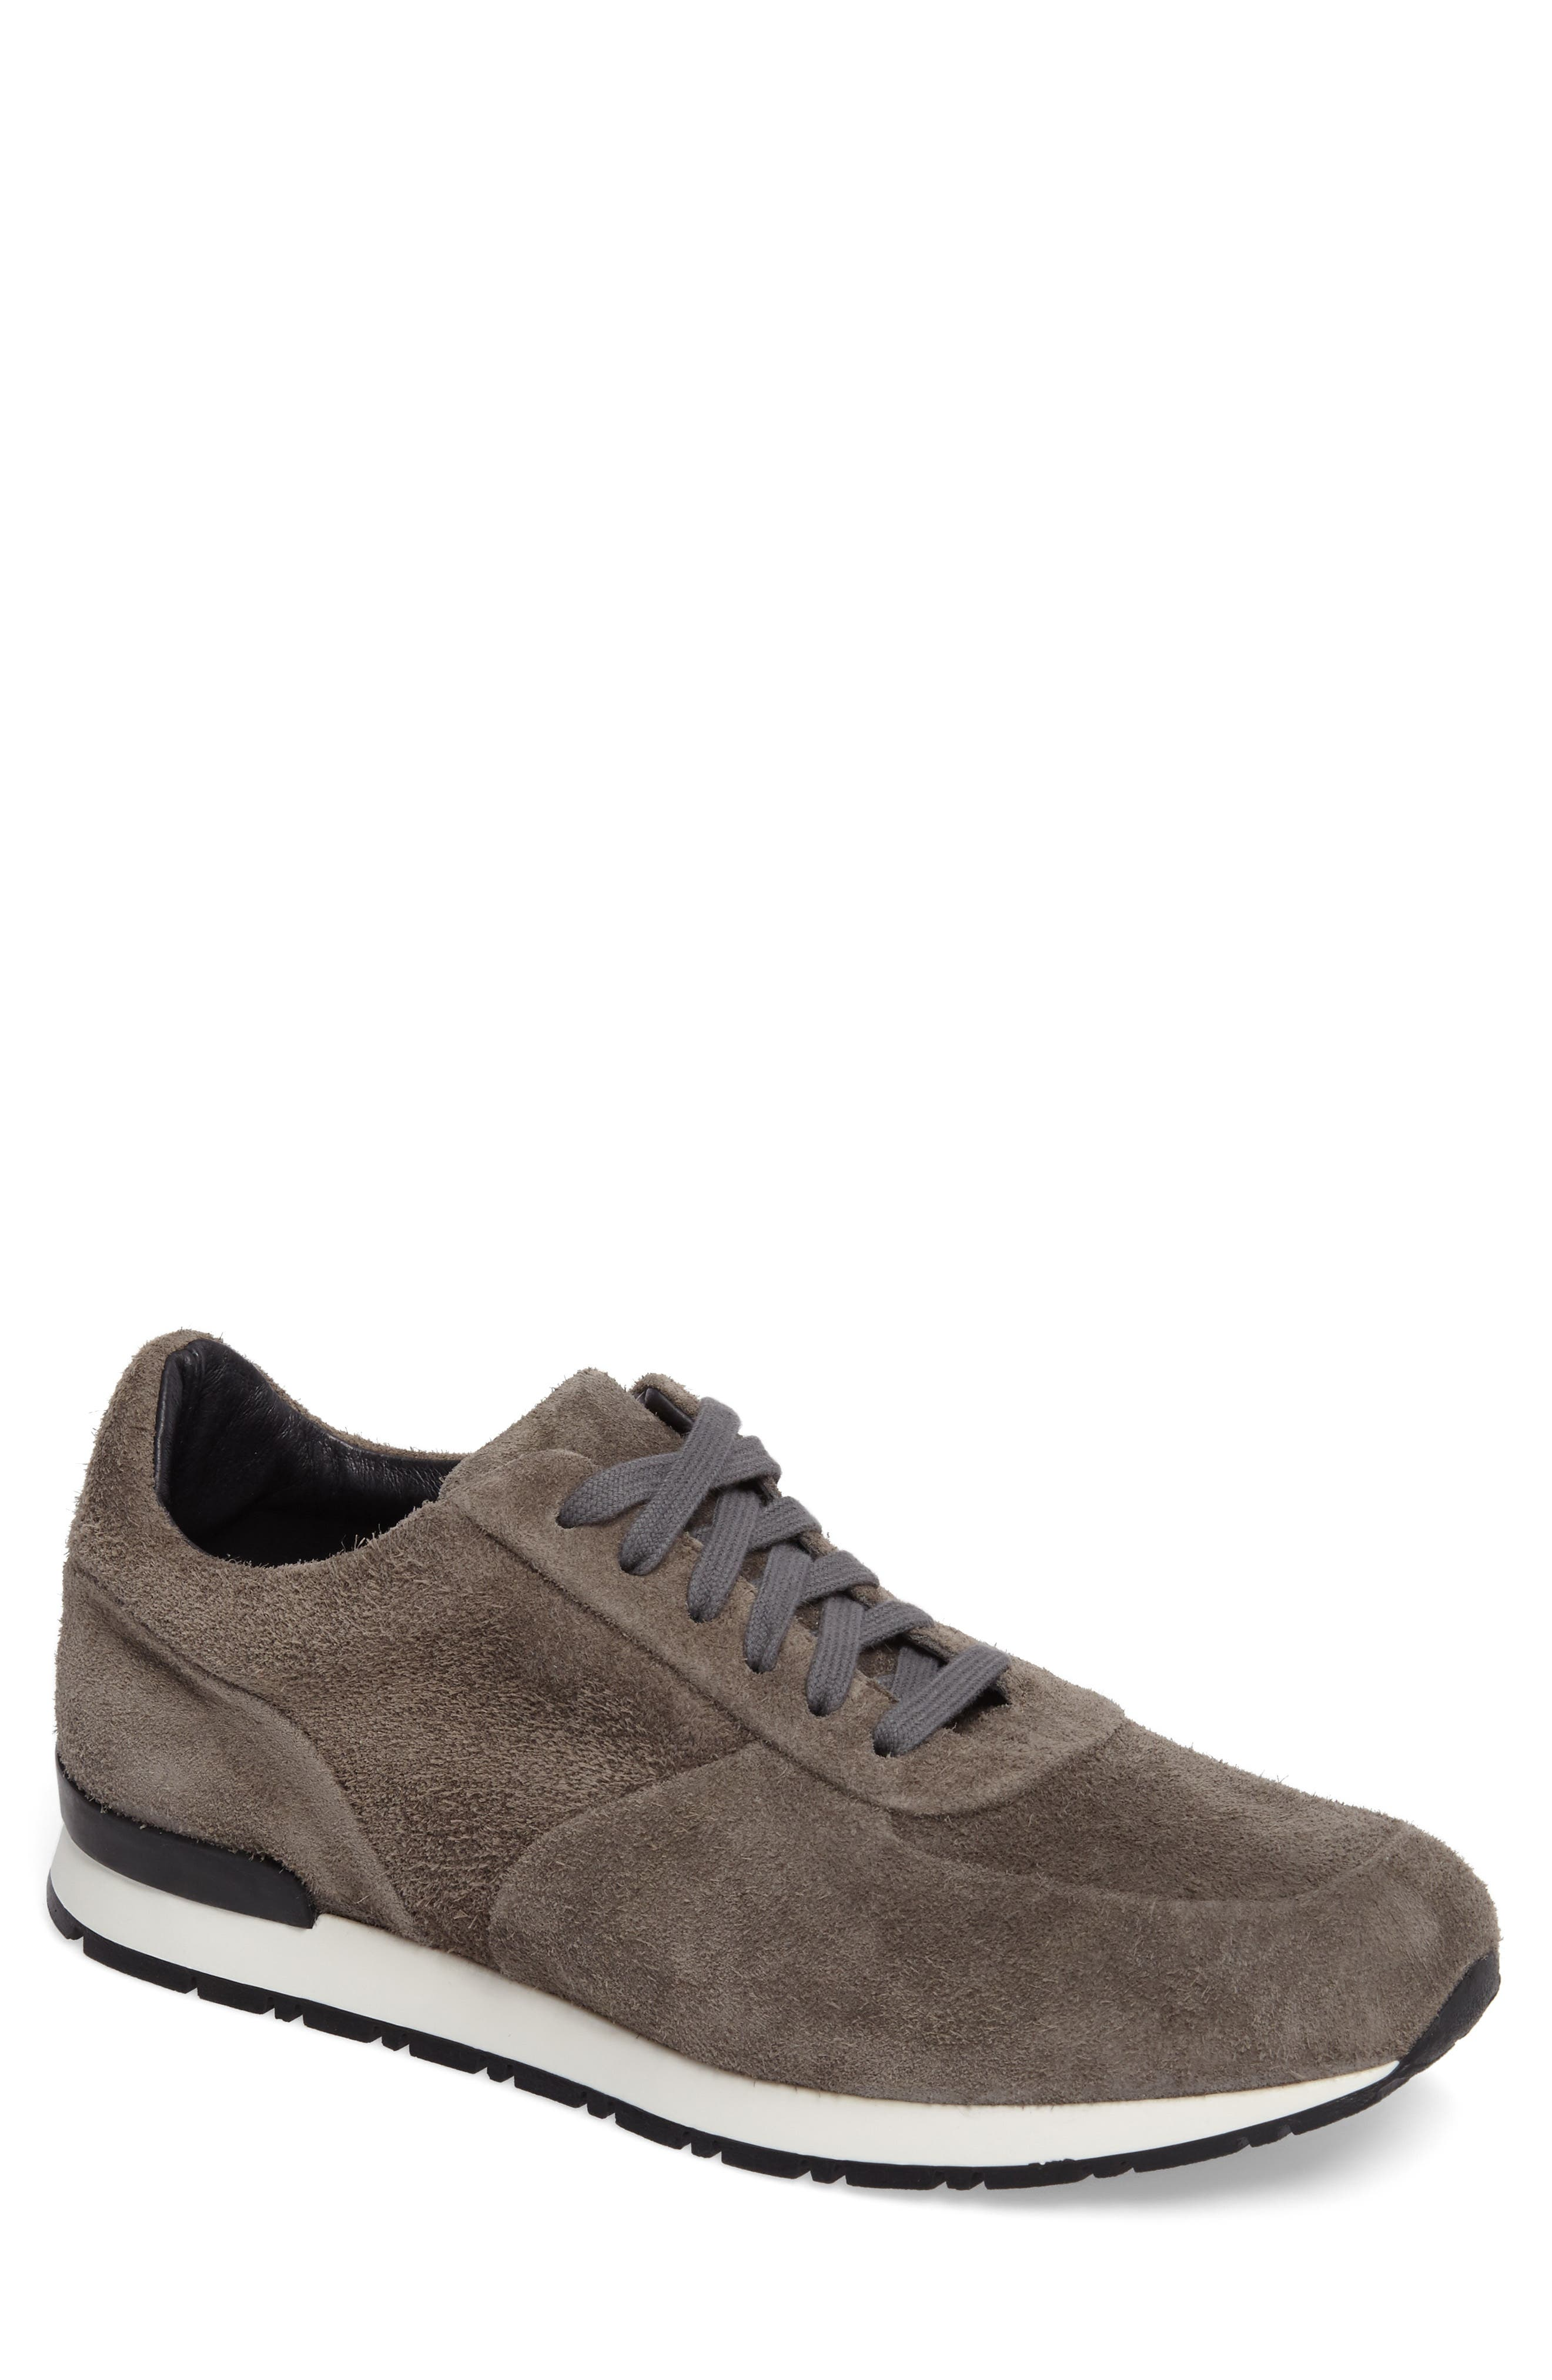 Hairy Sneaker,                             Main thumbnail 1, color,                             Grey Suede